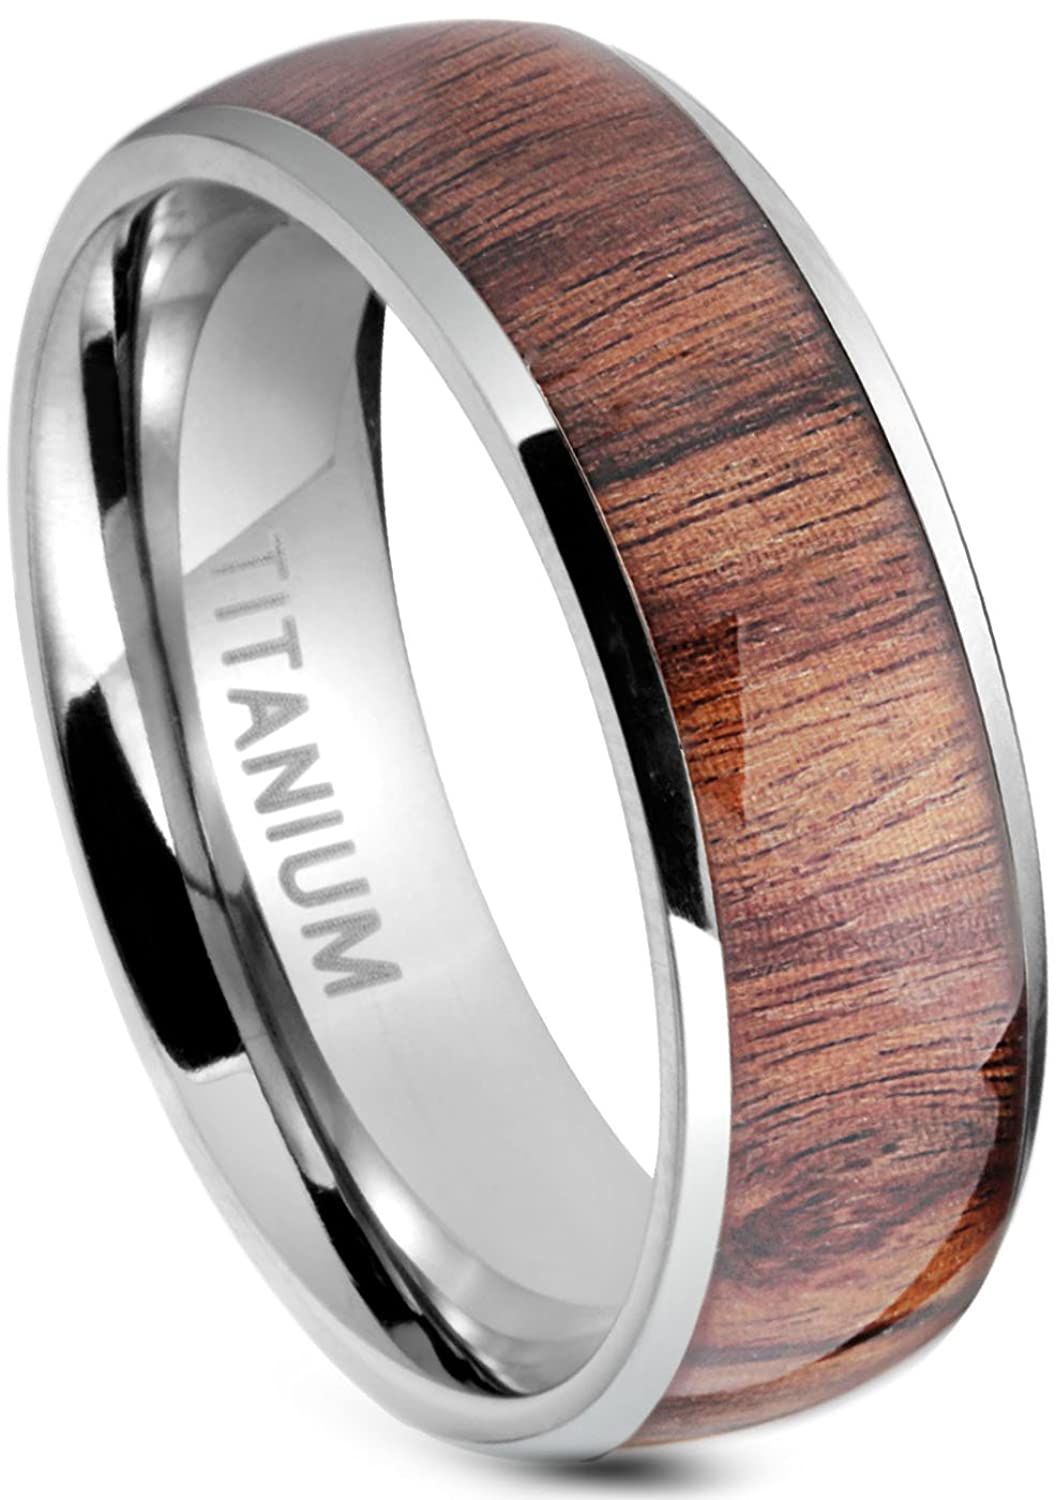 jstyle titanium engagement rings for men vintage wedding band 8mmamazoncom - Mens Titanium Wedding Rings